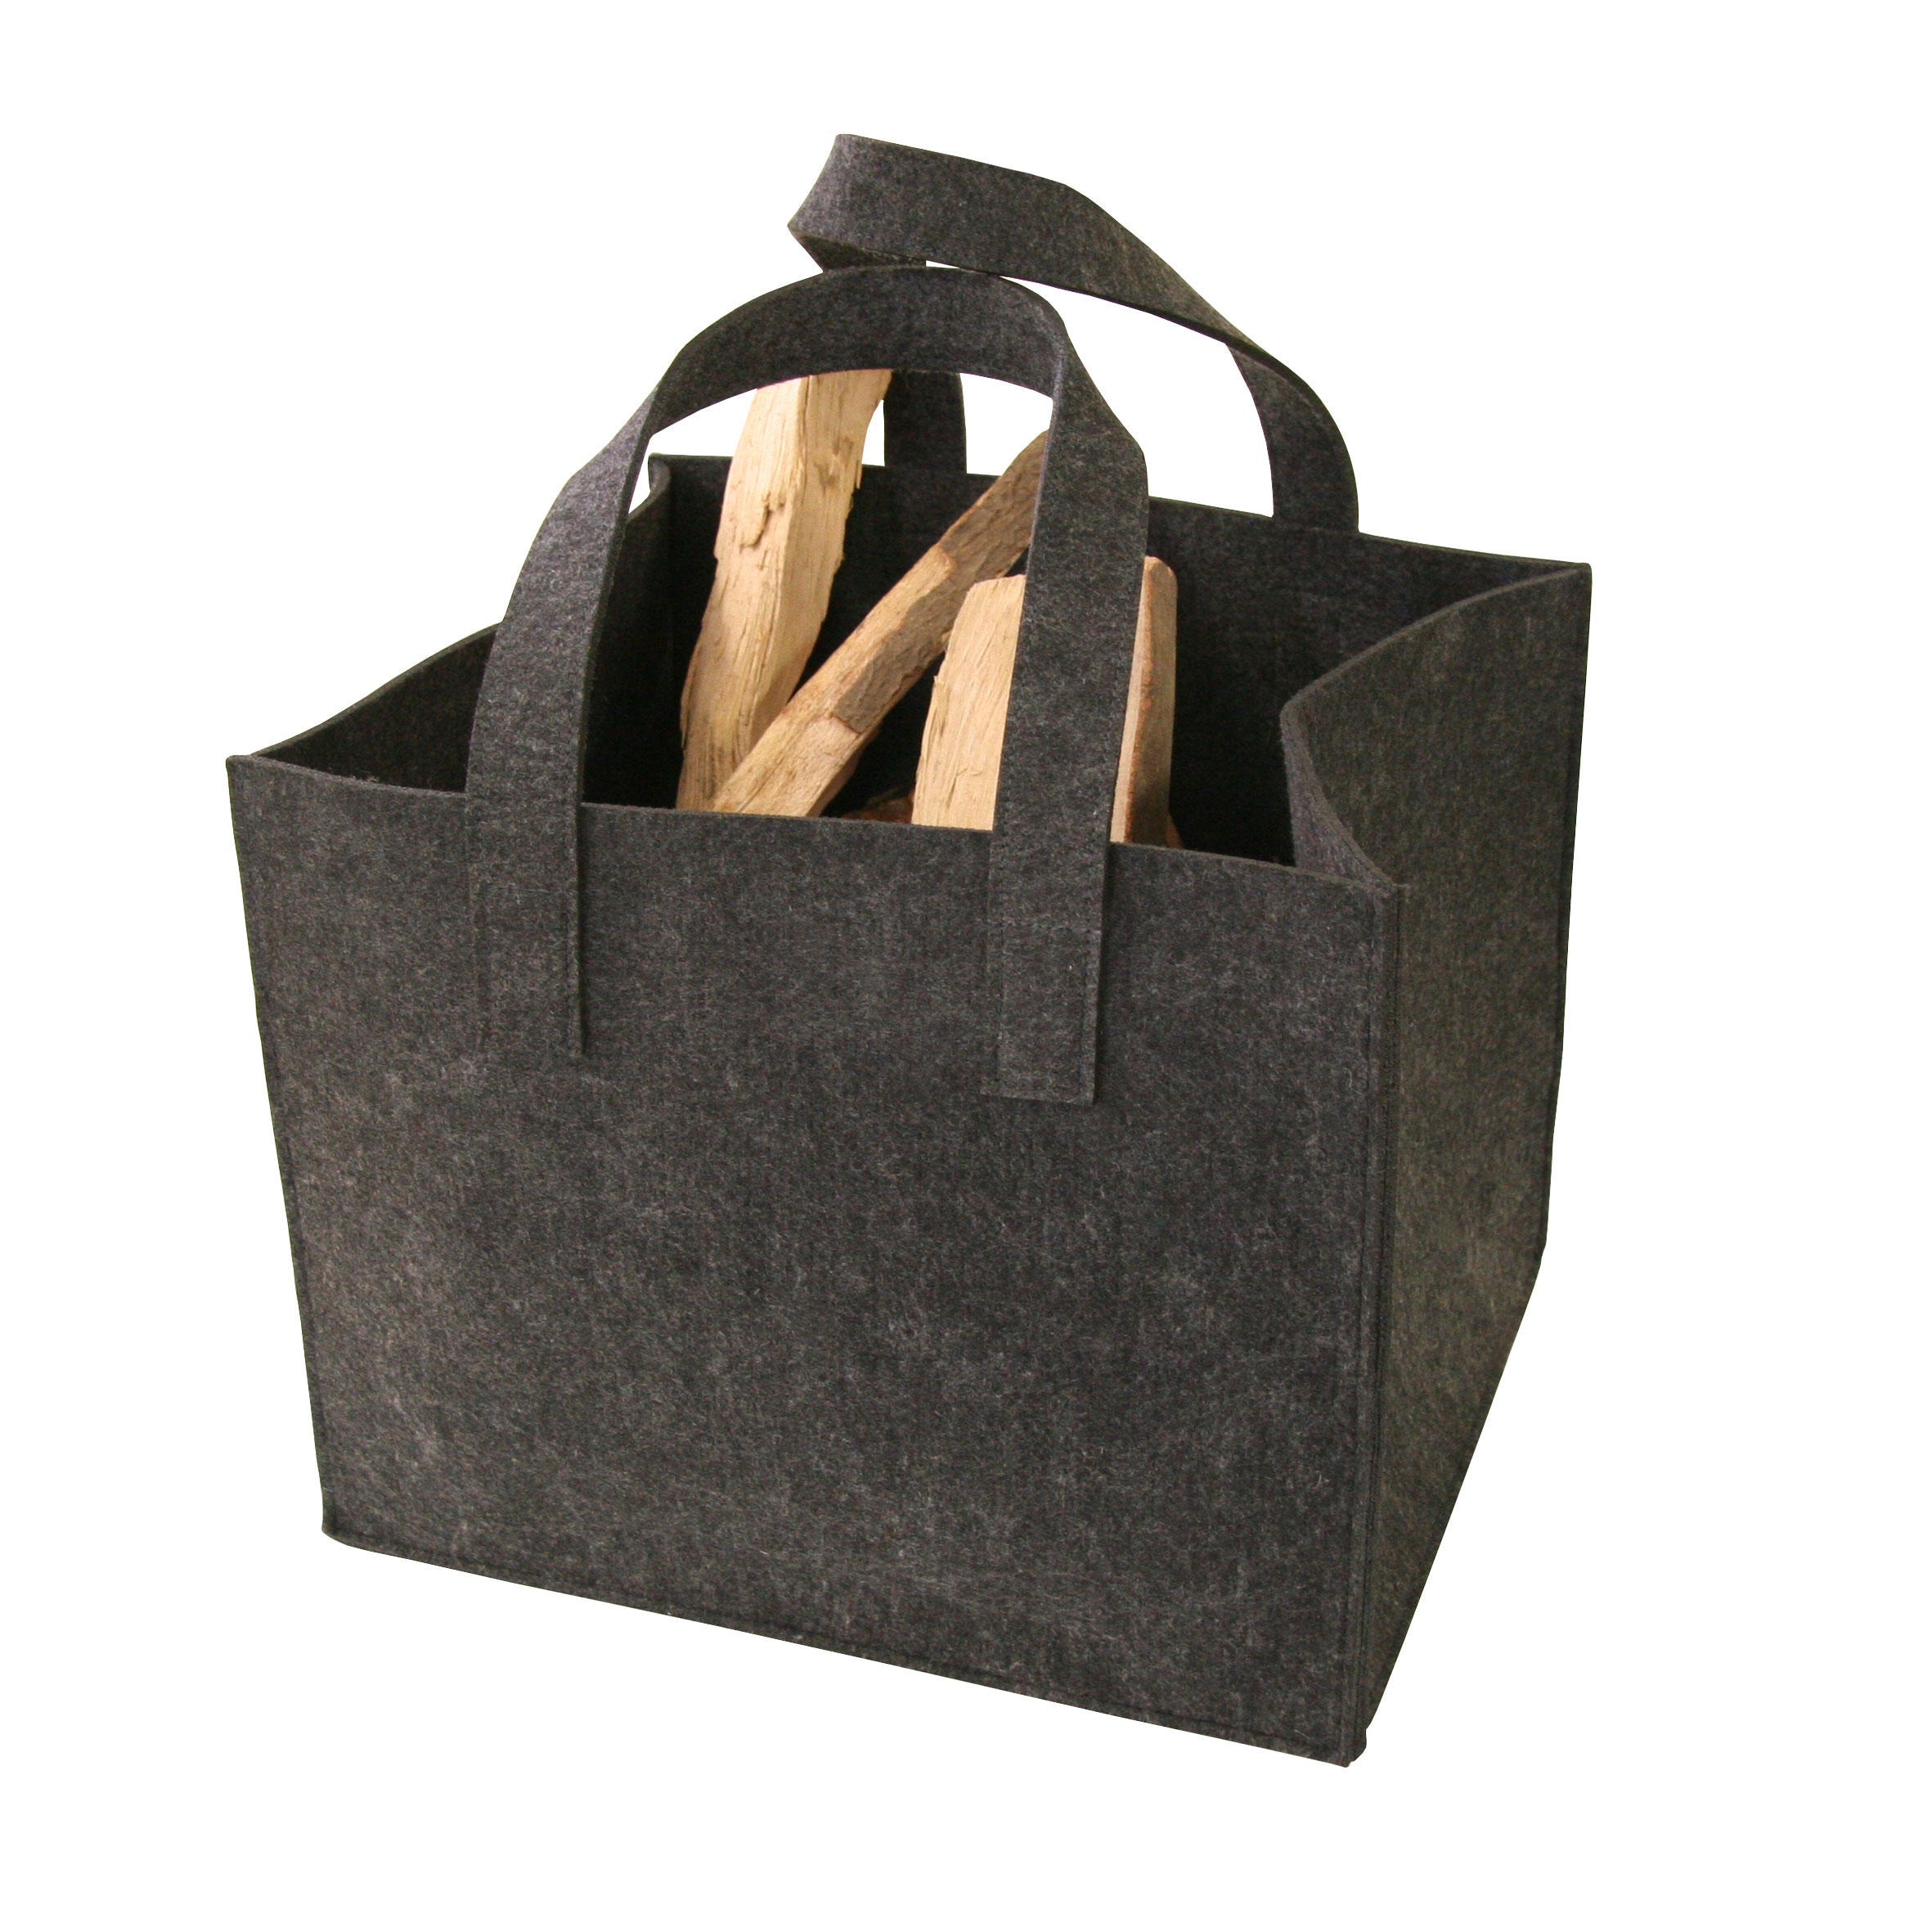 holzkorb filztasche f r kaminholz anthrazit 36x42x34cm bei. Black Bedroom Furniture Sets. Home Design Ideas